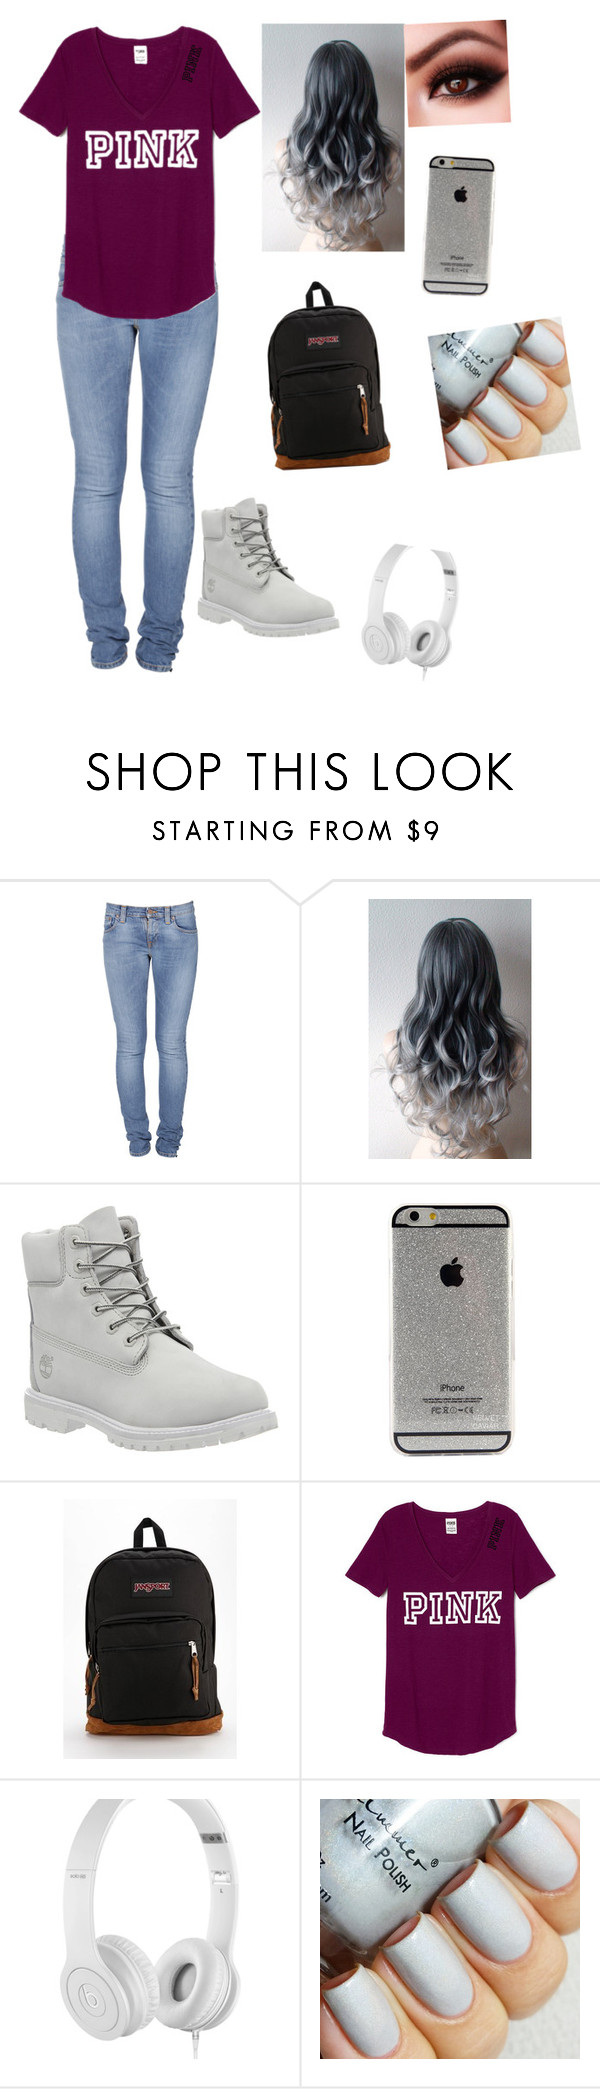 """Pink#2"" by oohsheyoungin ❤ liked on Polyvore featuring Nudie Jeans Co., Timberland, JanSport, Beats by Dr. Dre, women's clothing, women's fashion, women, female, woman and misses"